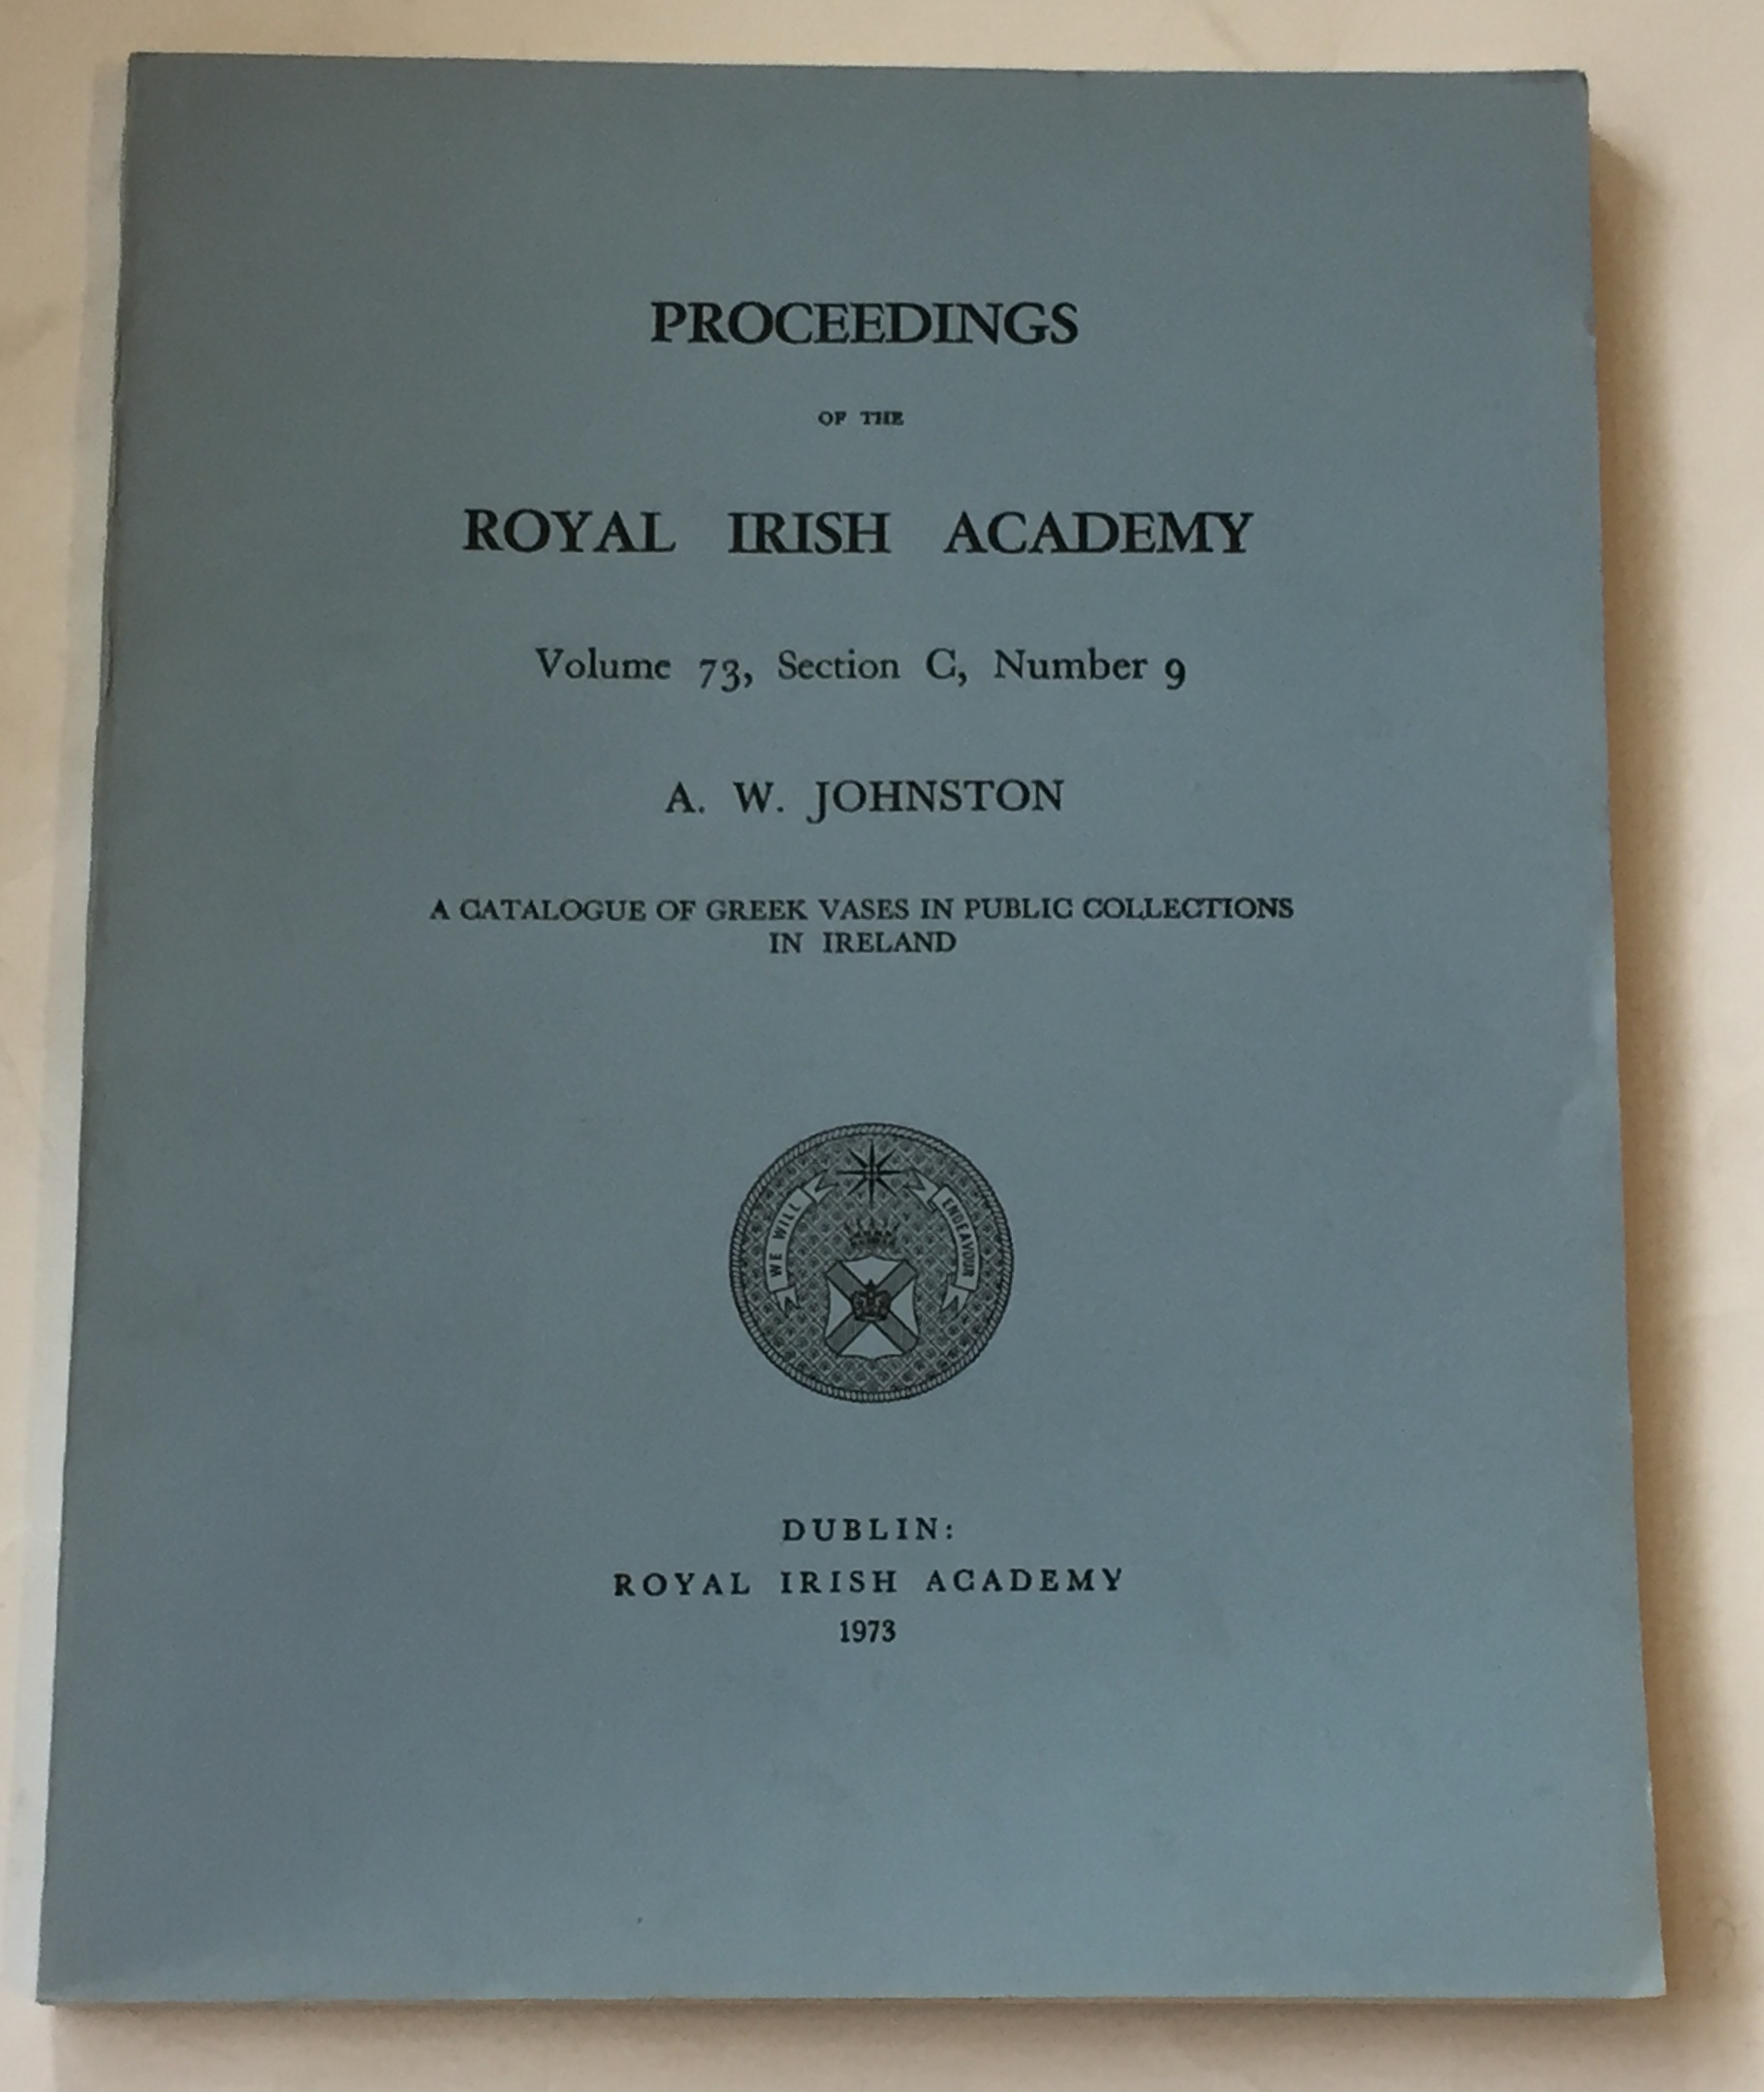 Image for A catalogue of Greek vases in public collections in Ireland :Proceedings of the Royal Irish Academy, Volume 73, Section C, No. 9